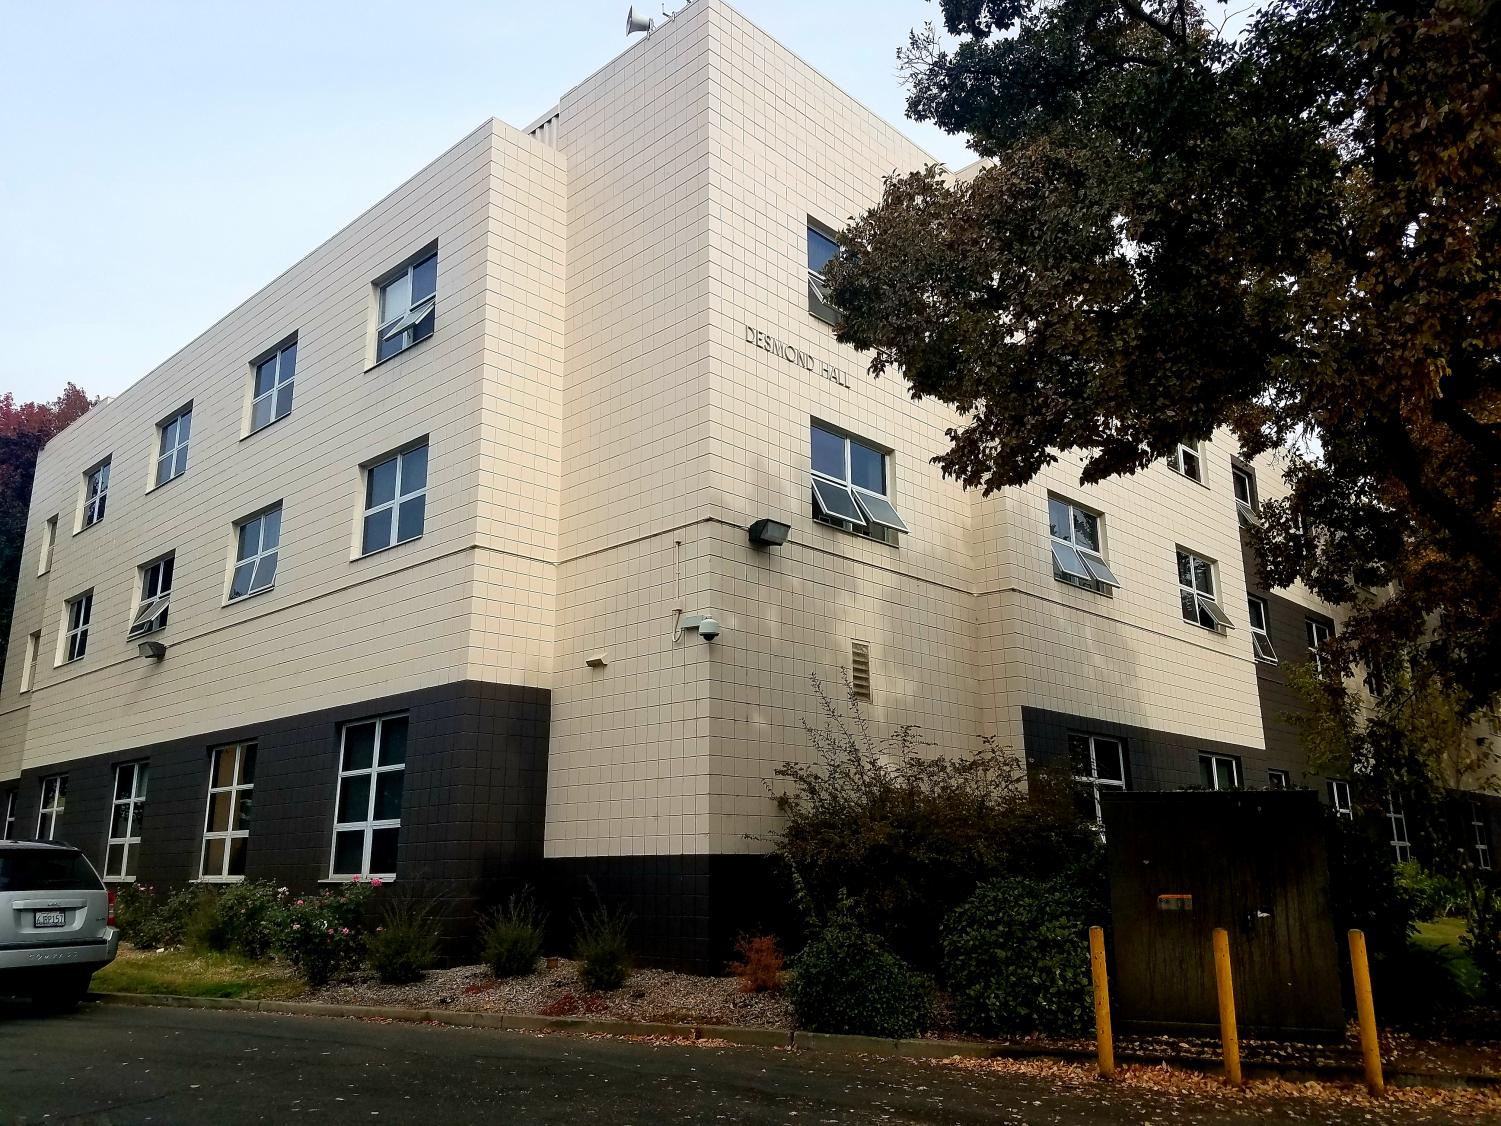 Desmond Hall, founded in 1991, is one of six residence halls where first-year students at Sac State can live on campus.